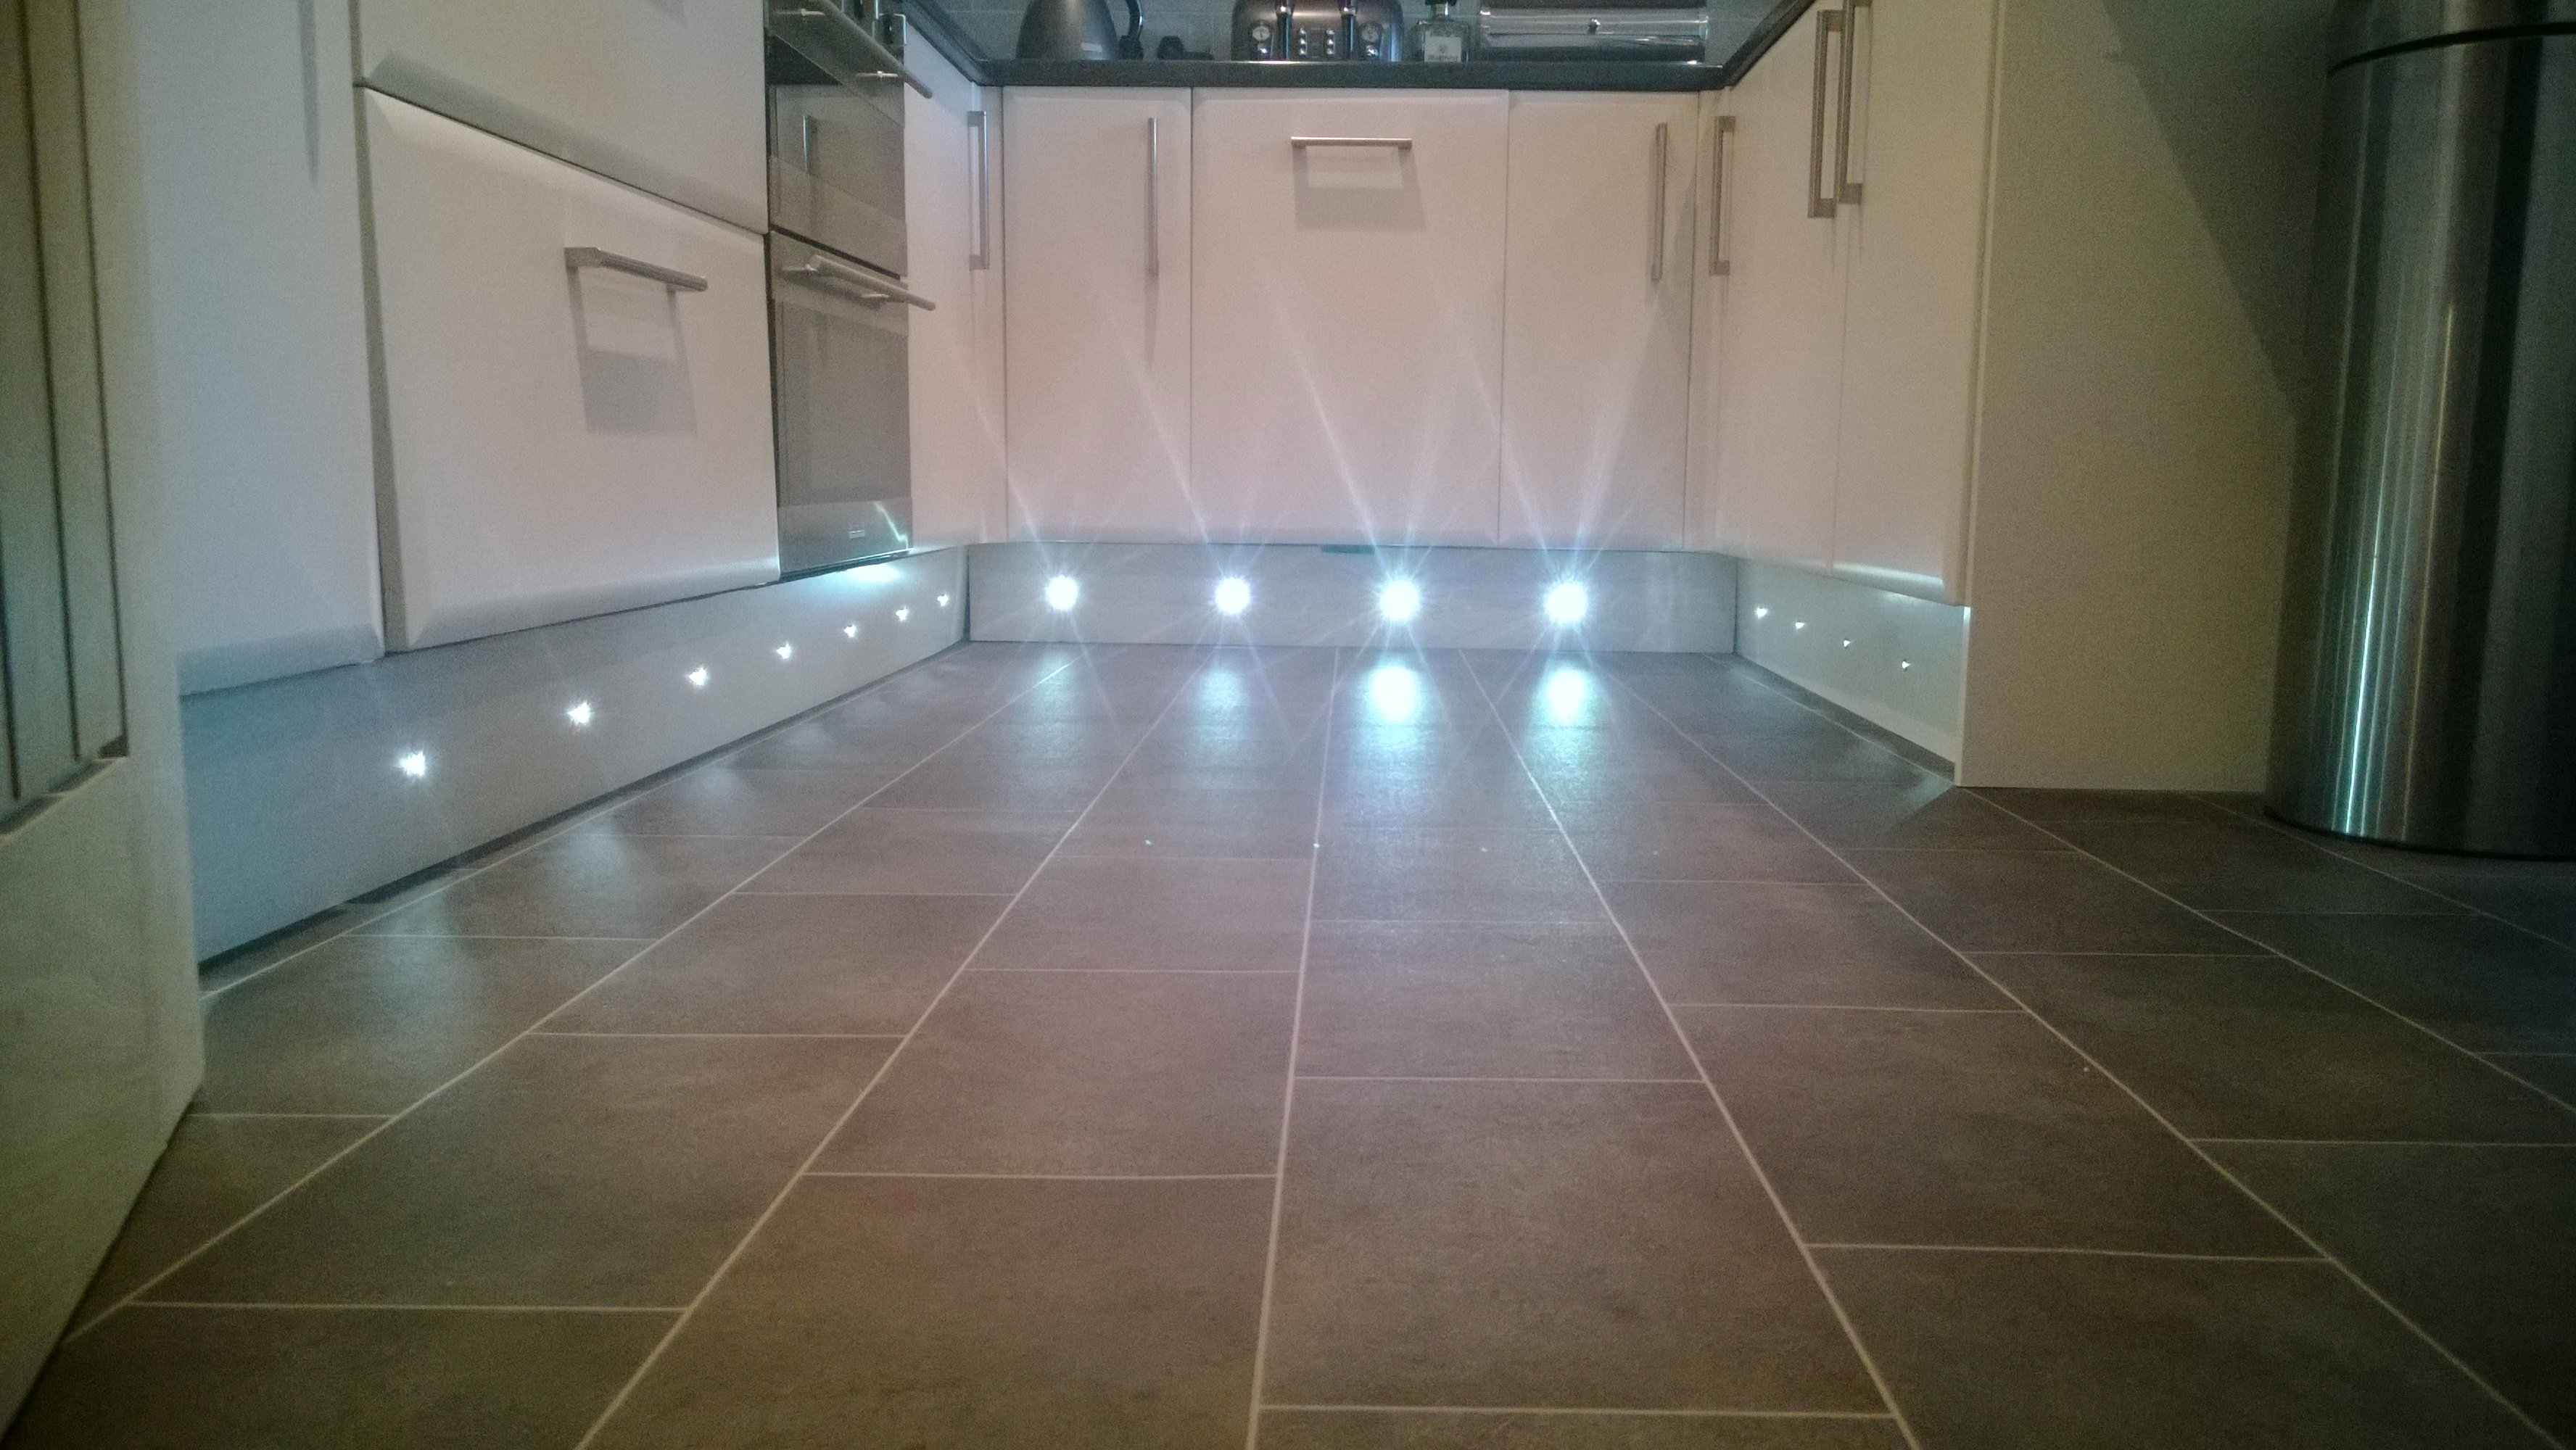 LED plinth lights installed by AJOB electrical Ltd electrician in Leeds